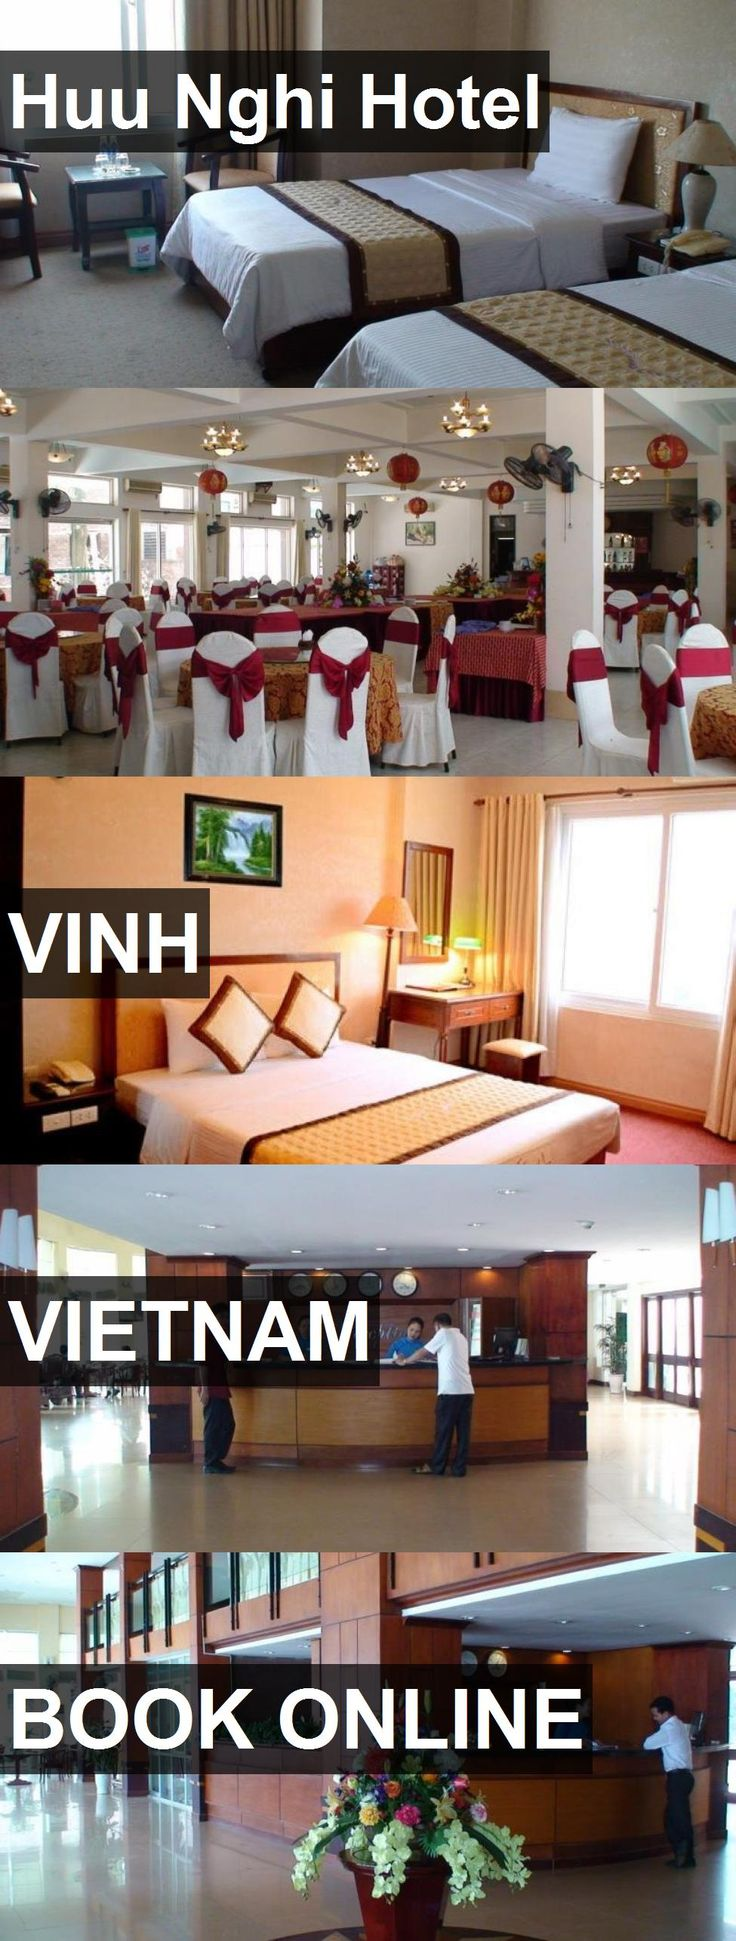 Hotel Huu Nghi Hotel in Vinh, Vietnam. For more information, photos, reviews and best prices please follow the link. #Vietnam #Vinh #HuuNghiHotel #hotel #travel #vacation